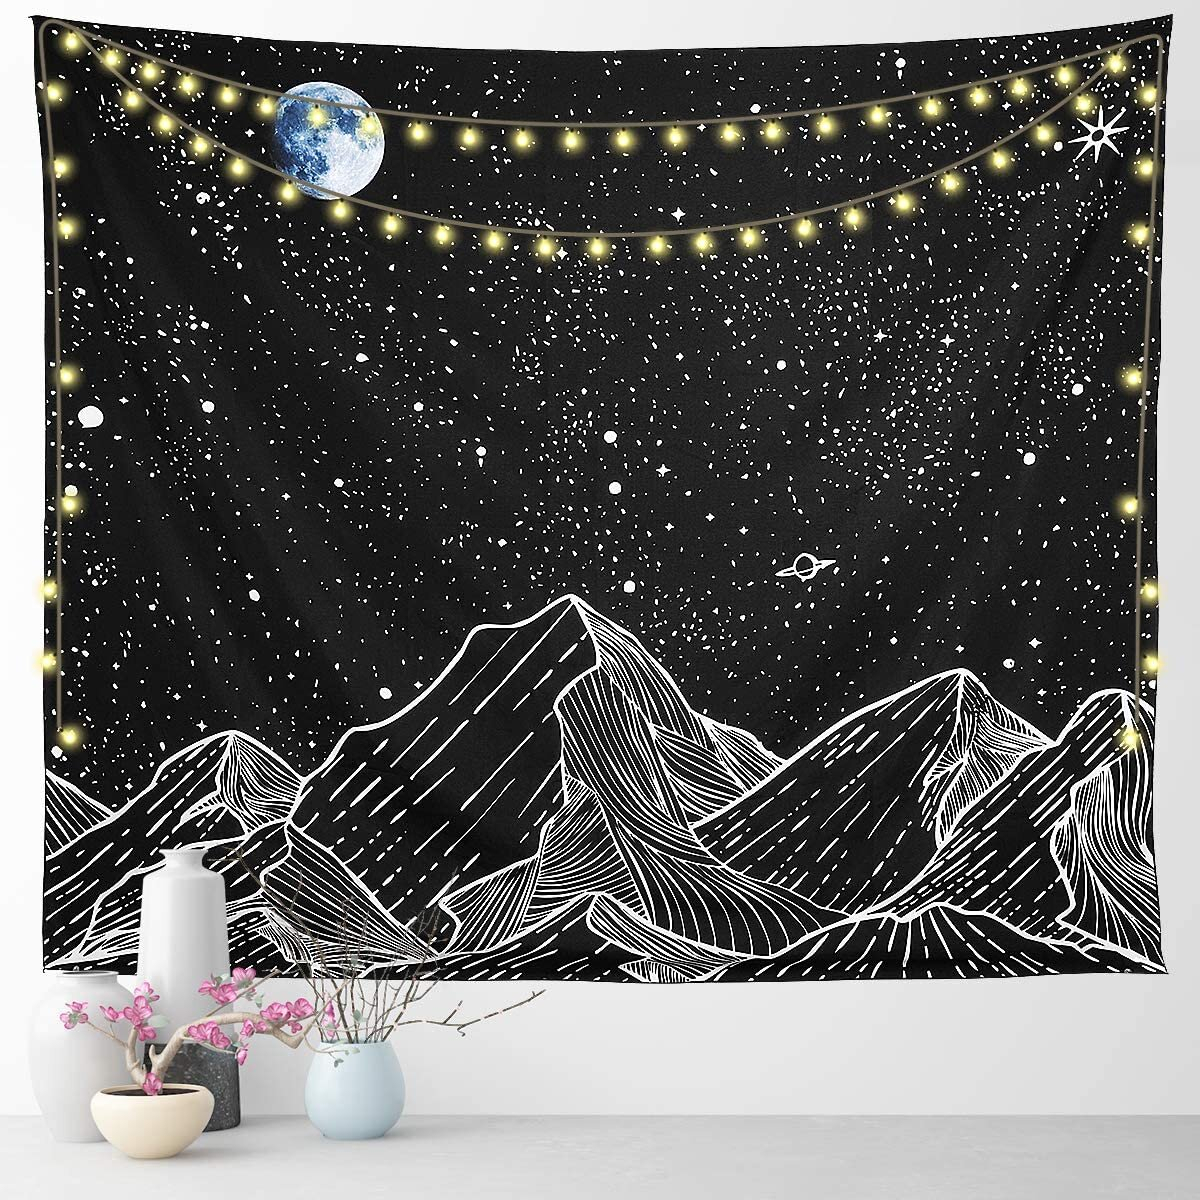 Polyester Constellations Tapestry Intended For Most Up To Date Blended Fabric Living Life Tapestries (View 7 of 20)